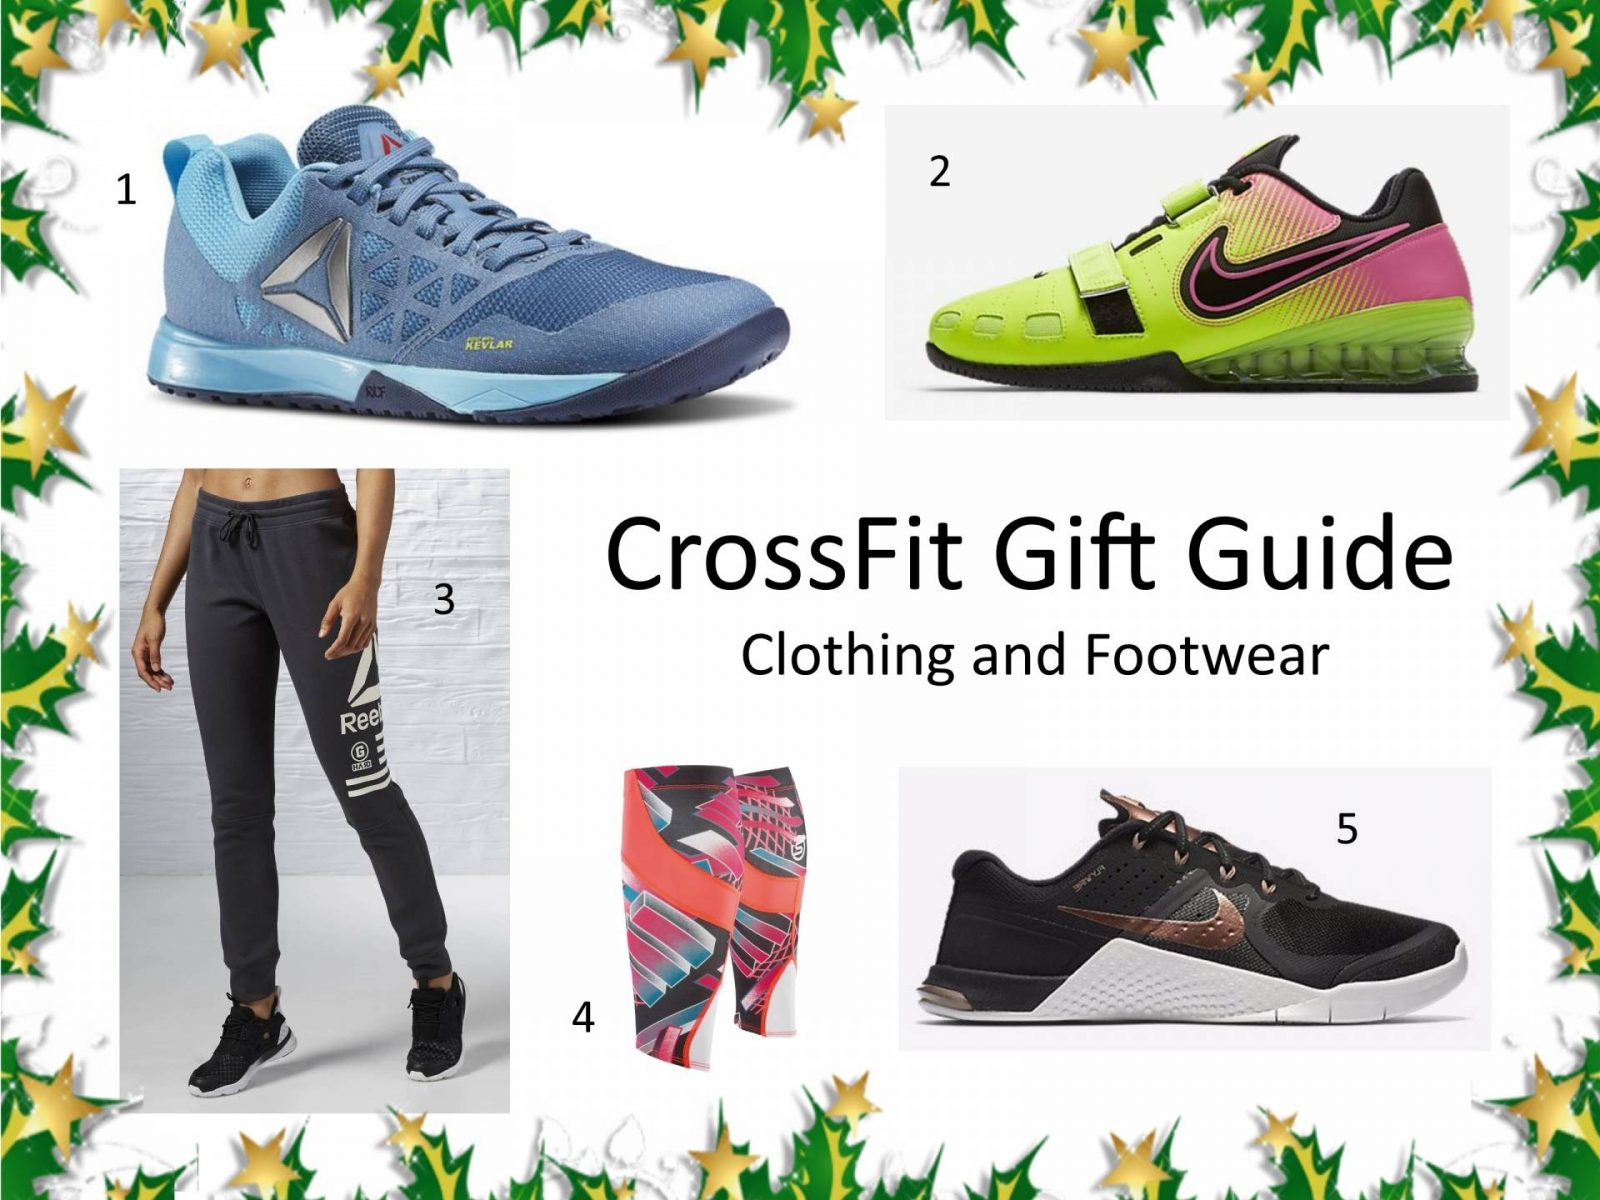 crossfit-gift-guide-clothing-and-footwear